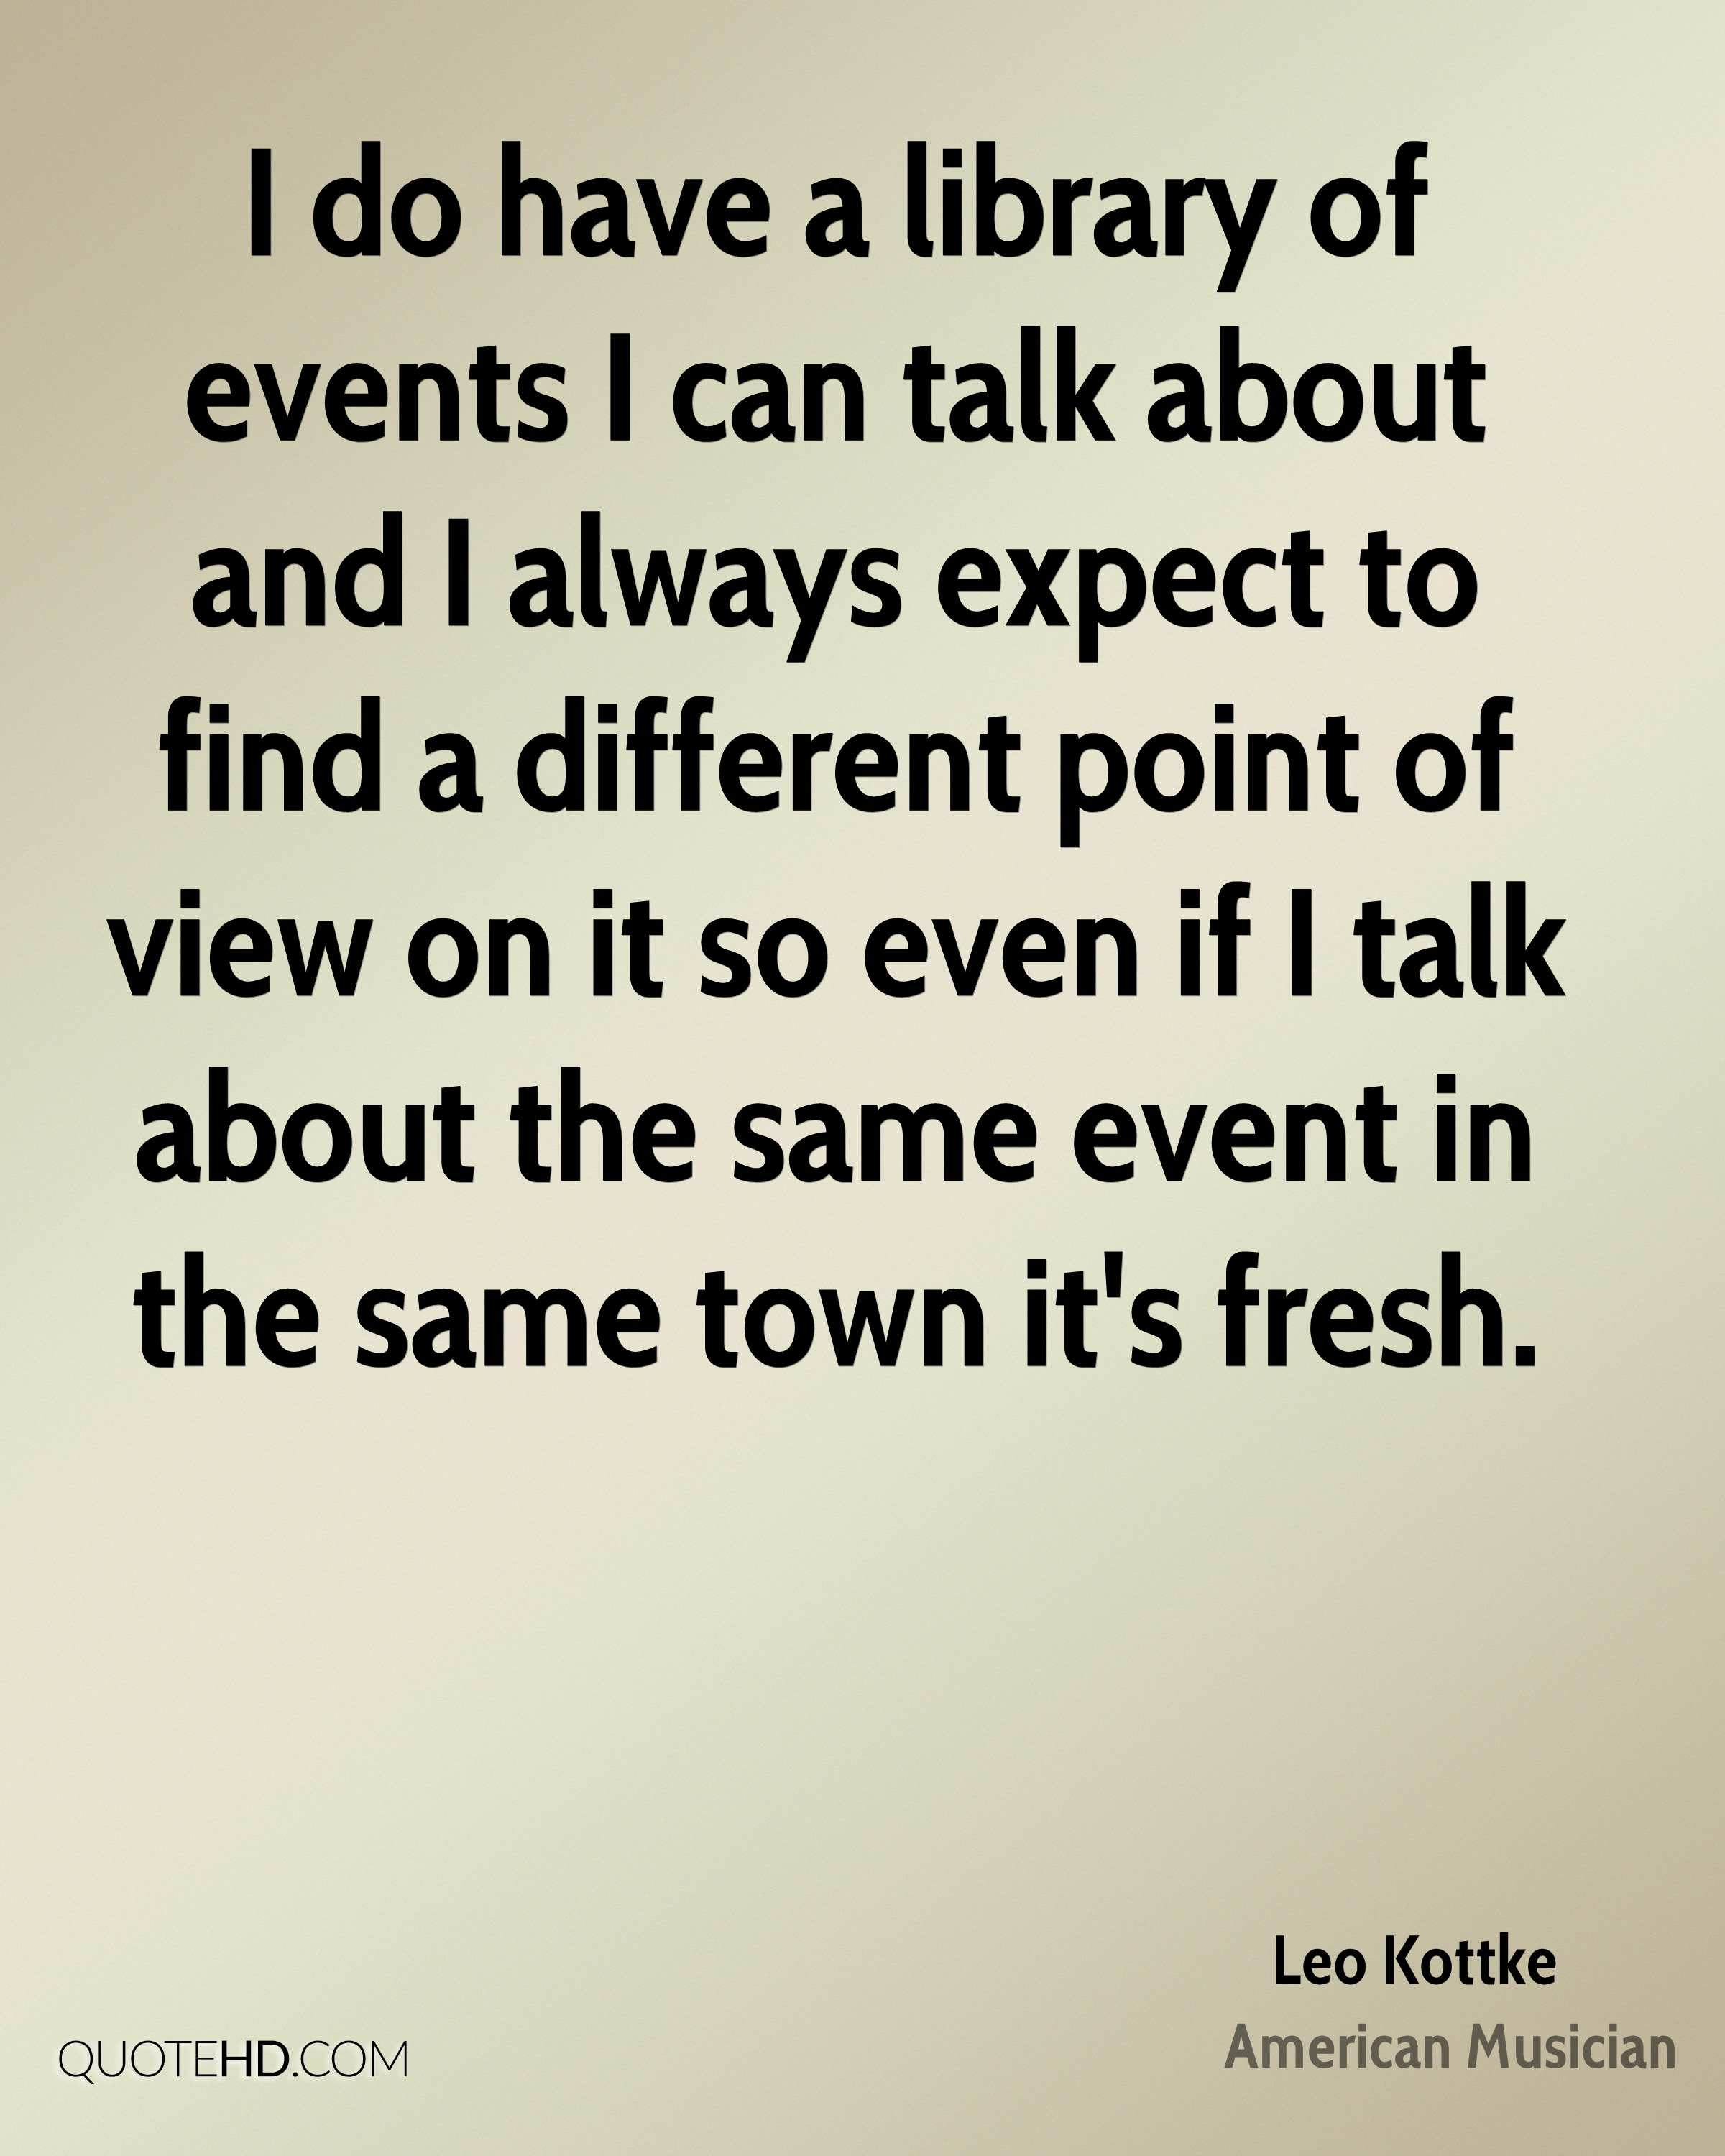 I do have a library of events I can talk about and I always expect to find a different point of view on it so even if I talk about the same event in the same town it's fresh.